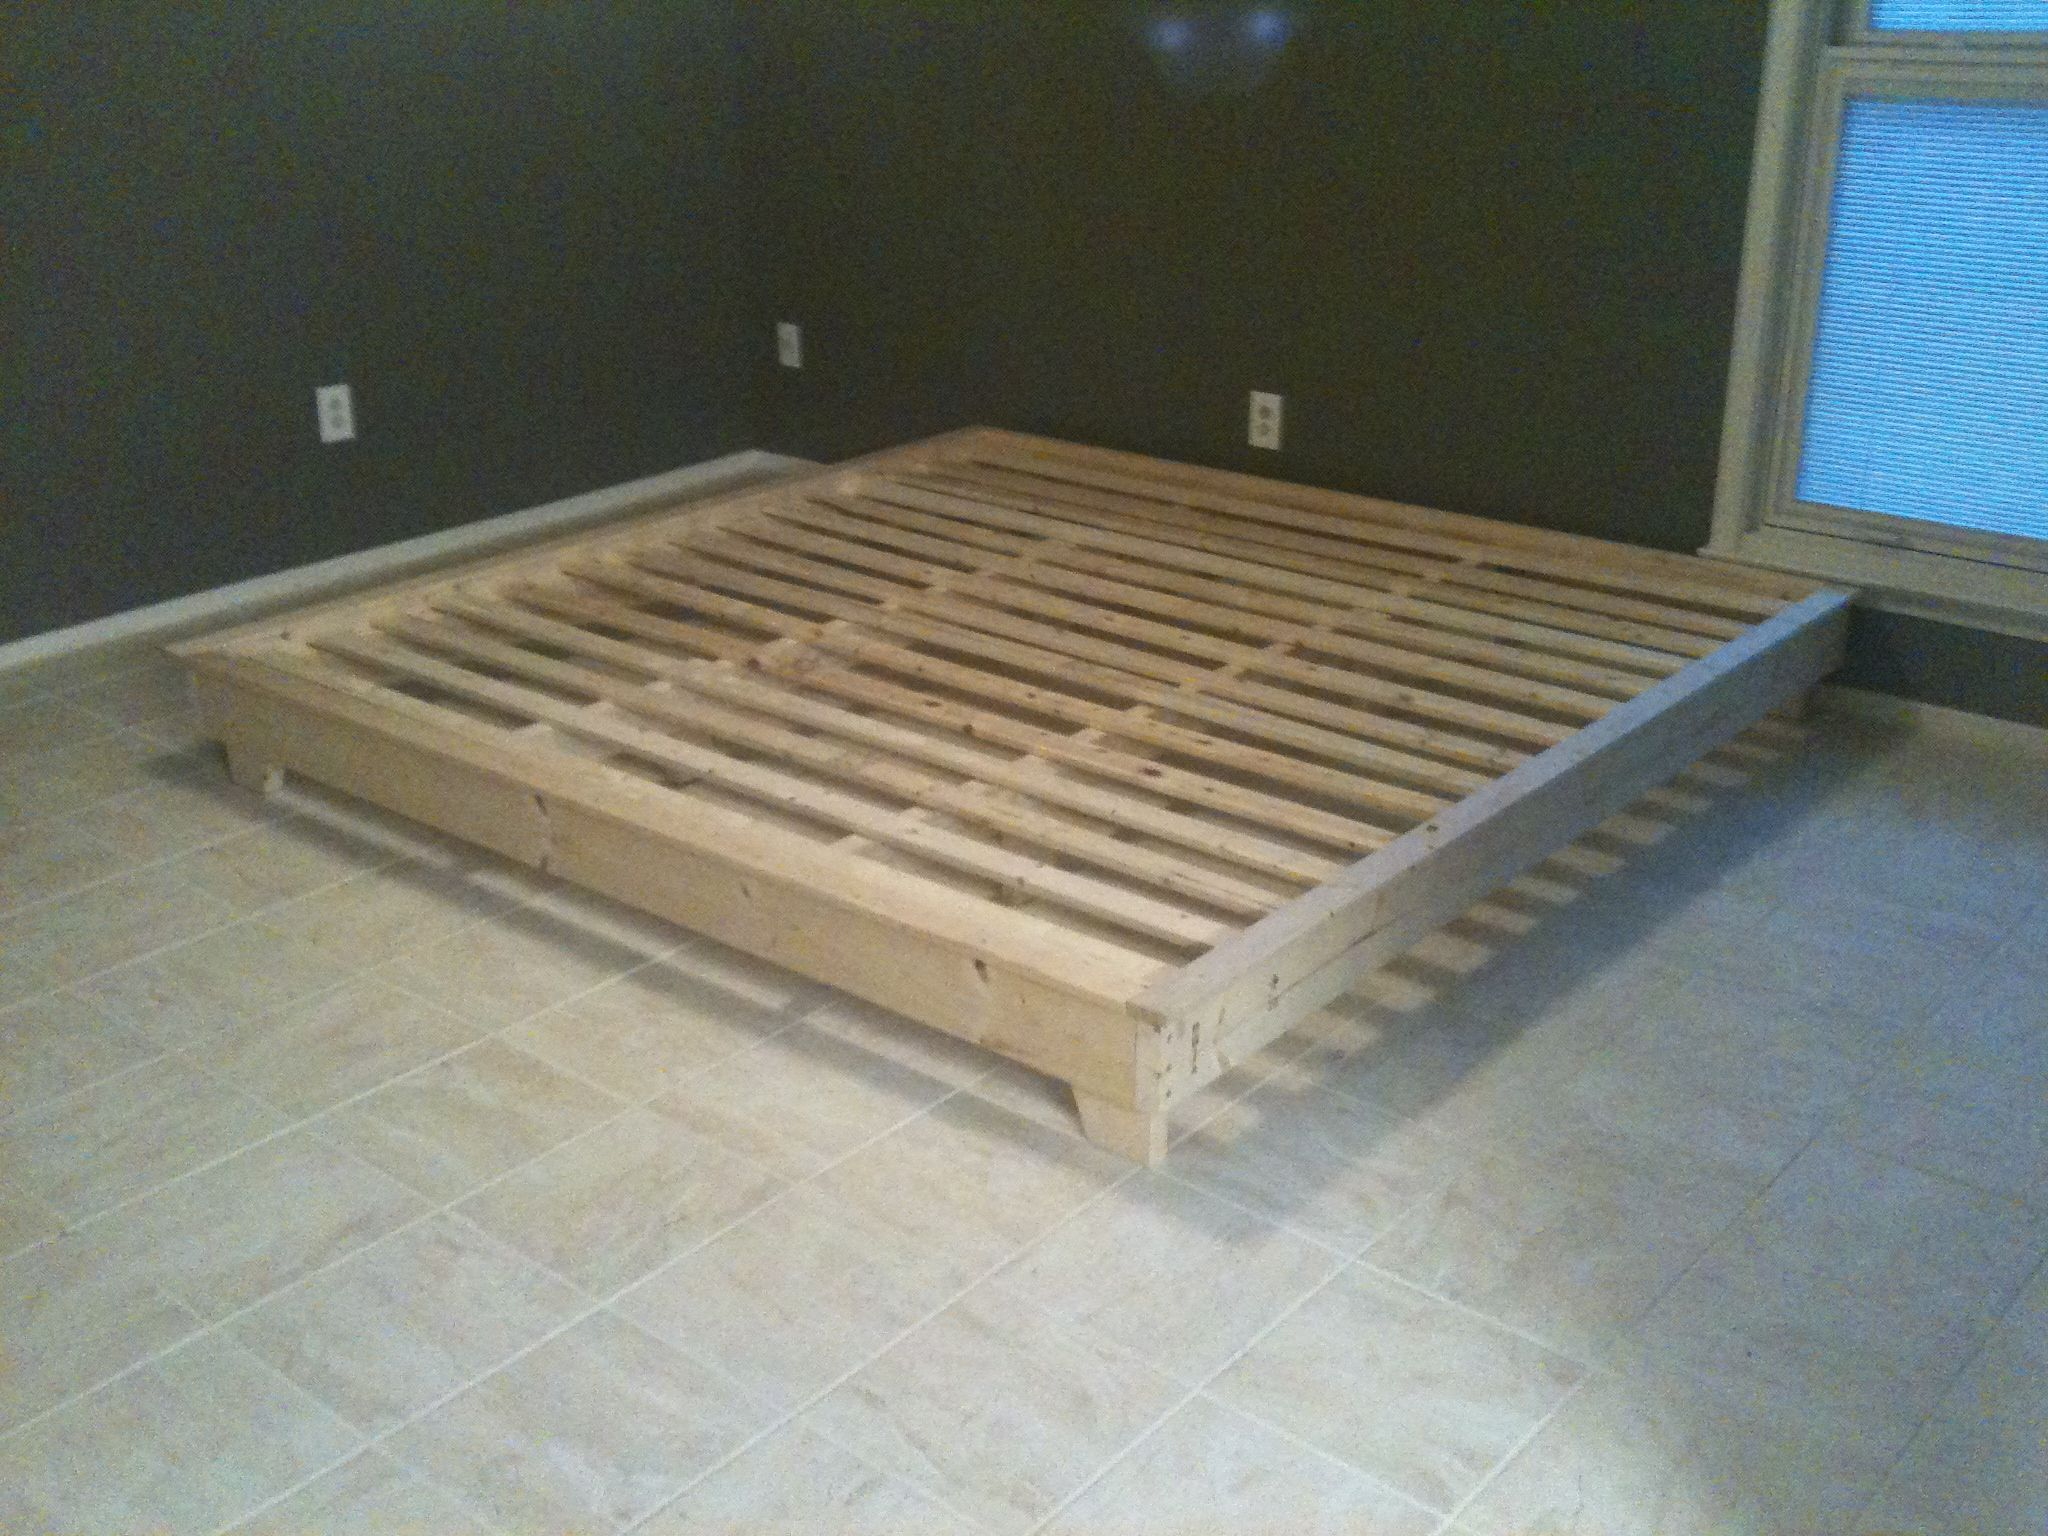 Bed frame designs with storage - How To Build A Twin Bed Frame Twin Bed Frames Twin Bed Headboards And Bed Plans